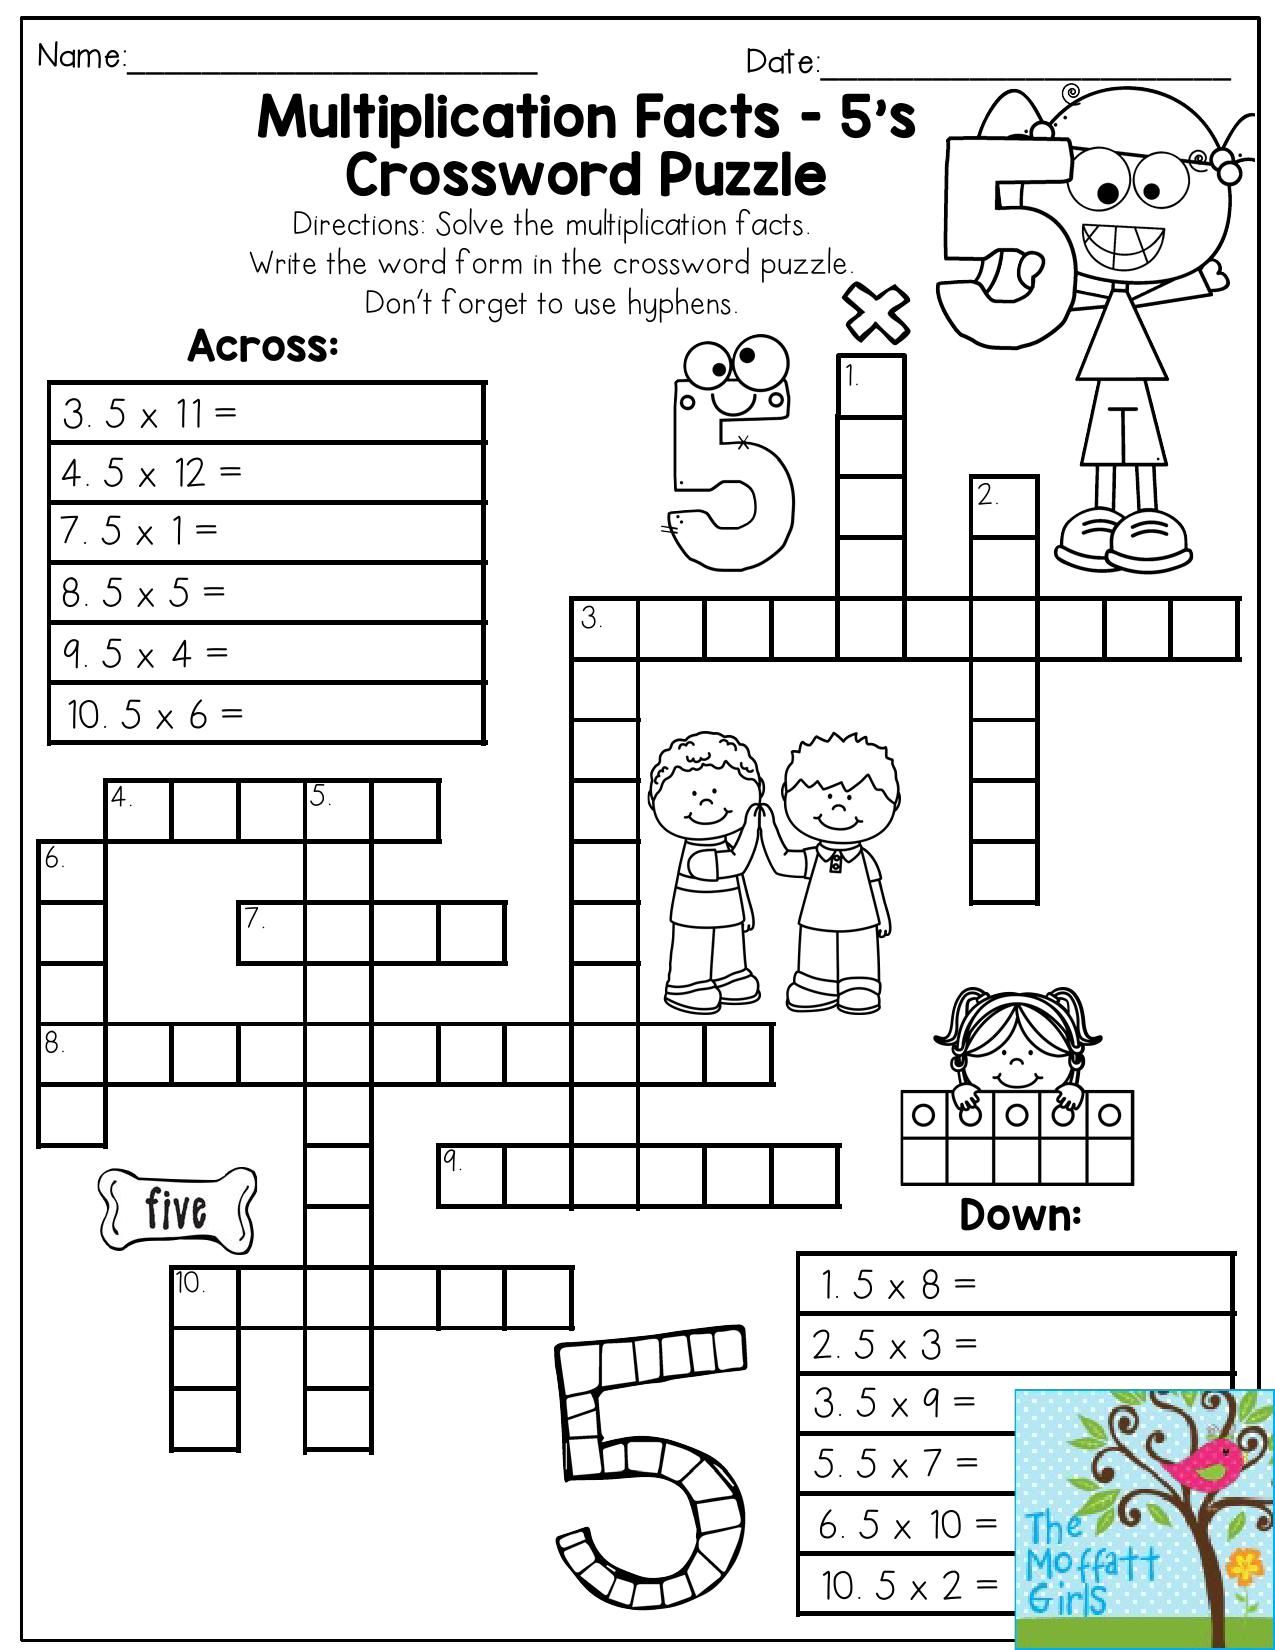 Multiplication Facts Crossword Puzzle- Third Grade Students Love - Printable Crossword Puzzle For Grade 2